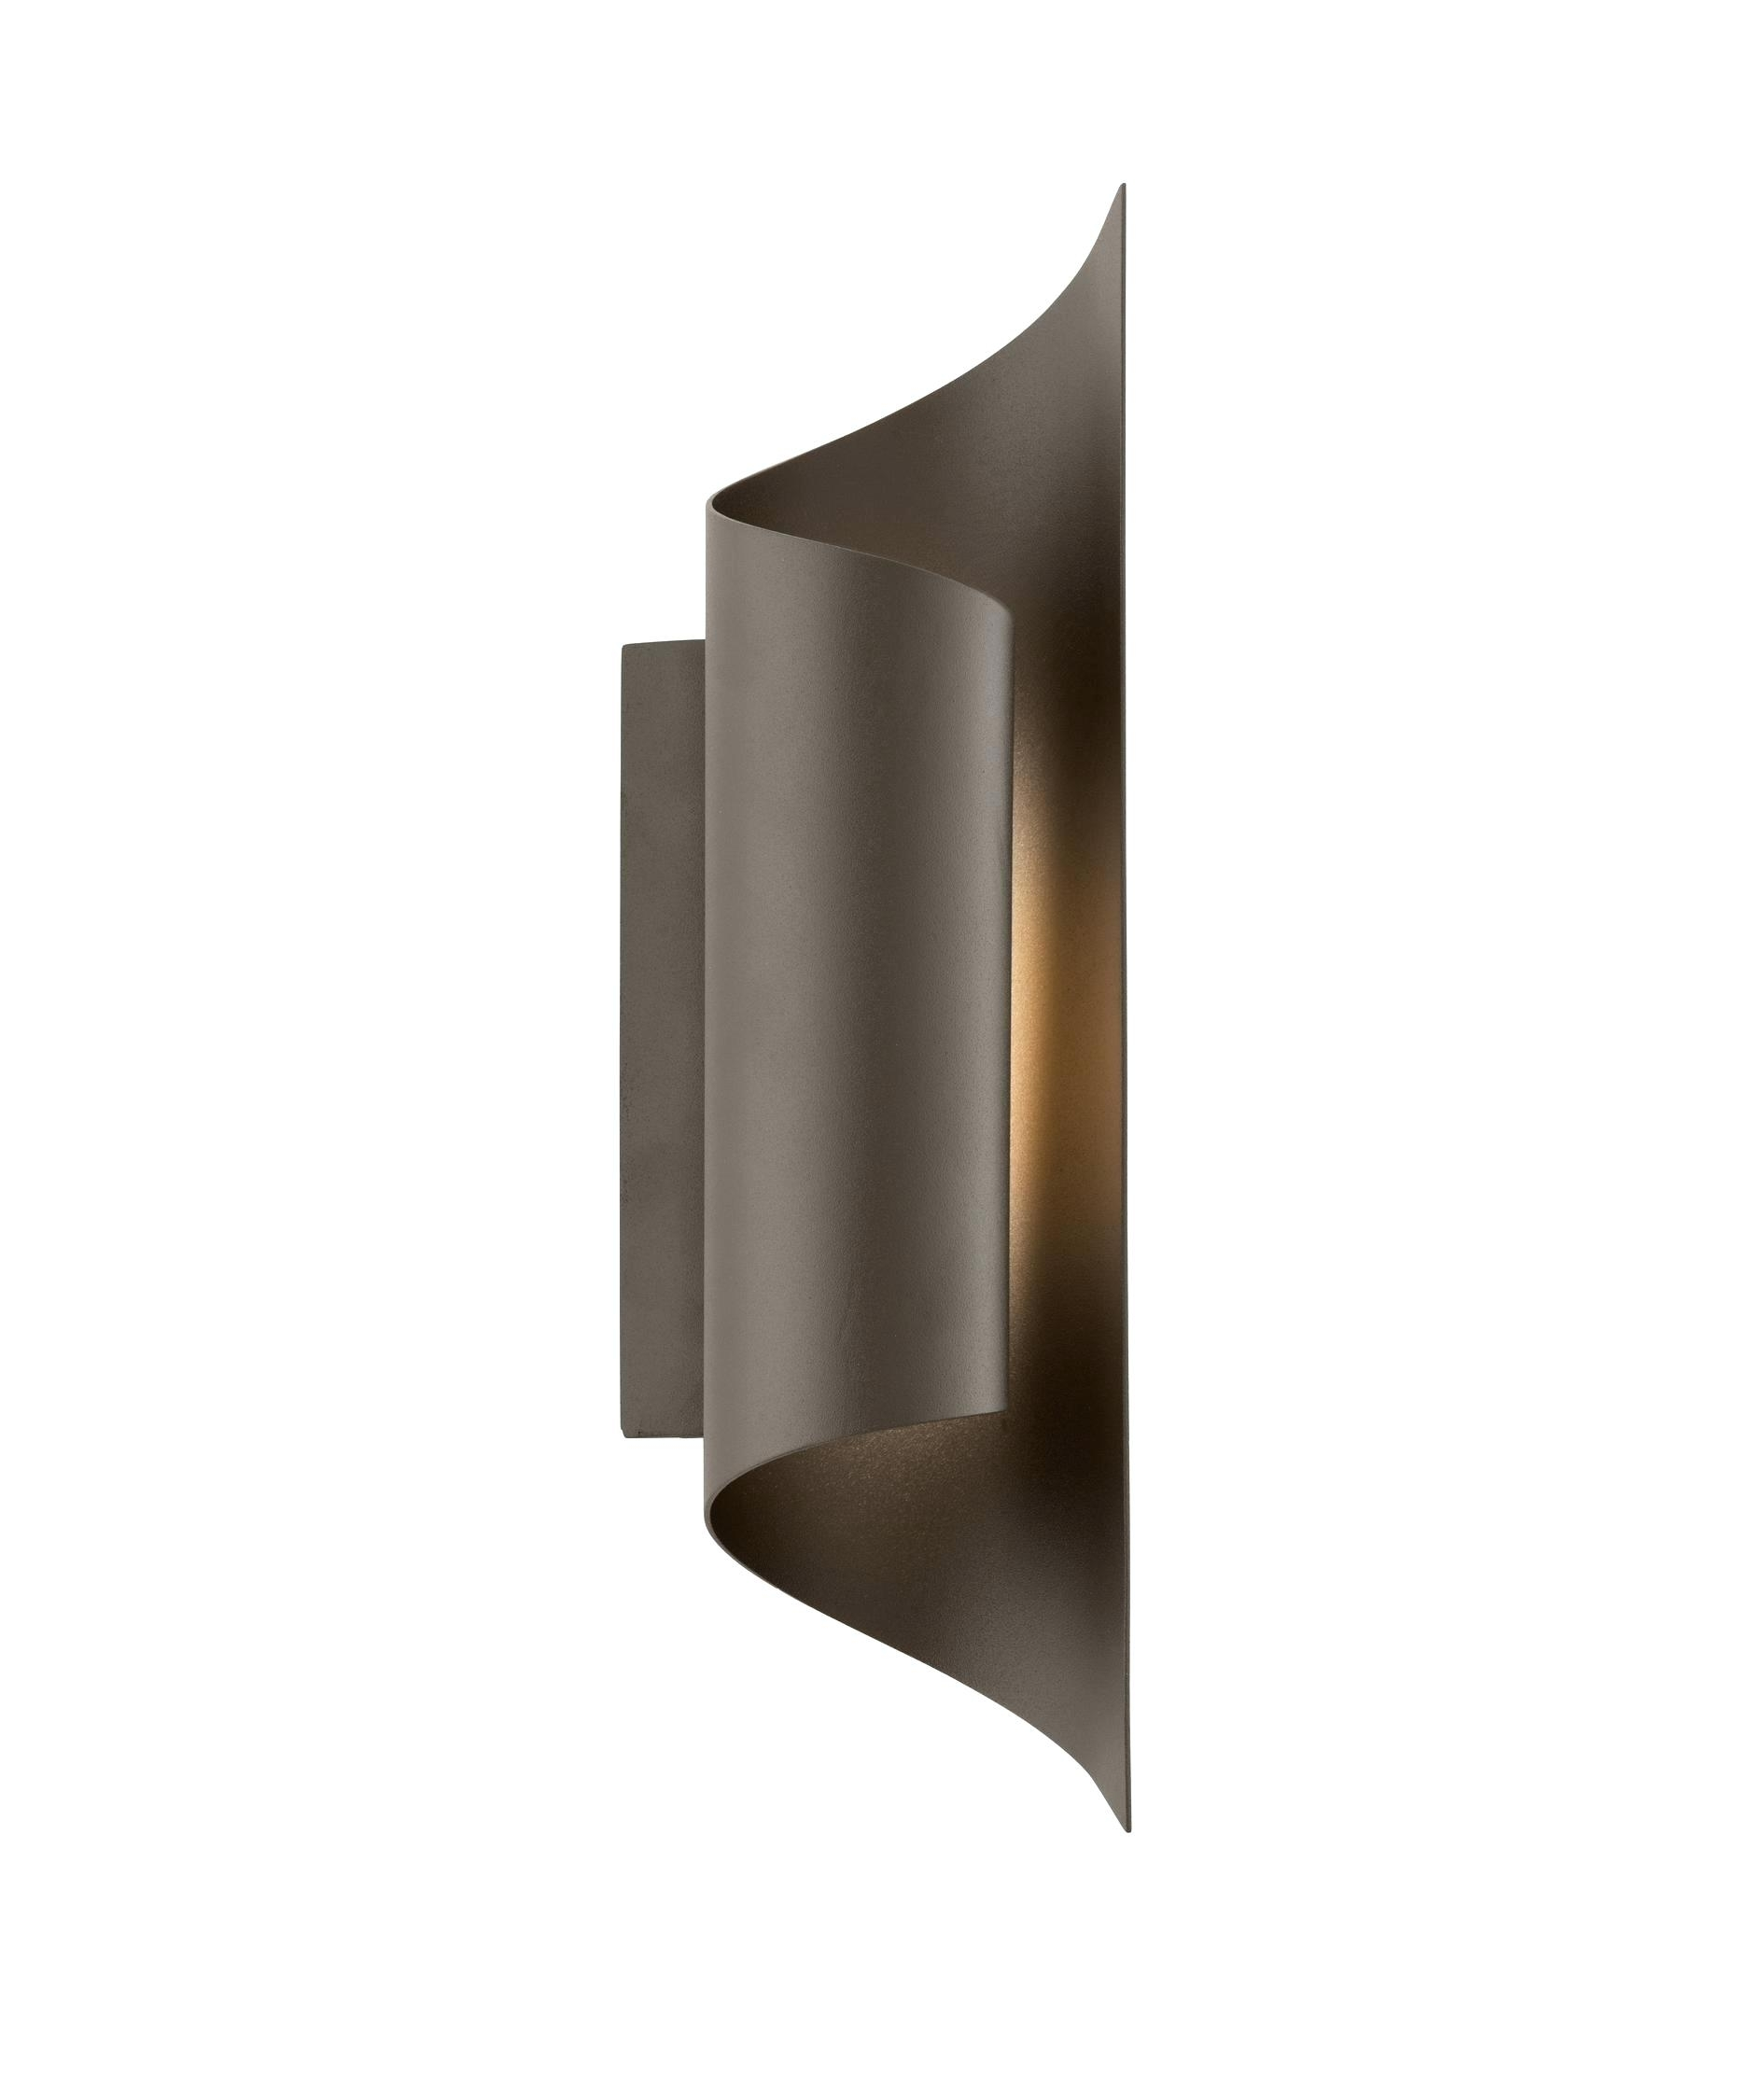 Outdoor Wall Light Lighting Ideas Lights Led Motion Sensor – In Eglo Lighting Sidney Outdoor Wall Lights With Motion Sensor (View 13 of 15)